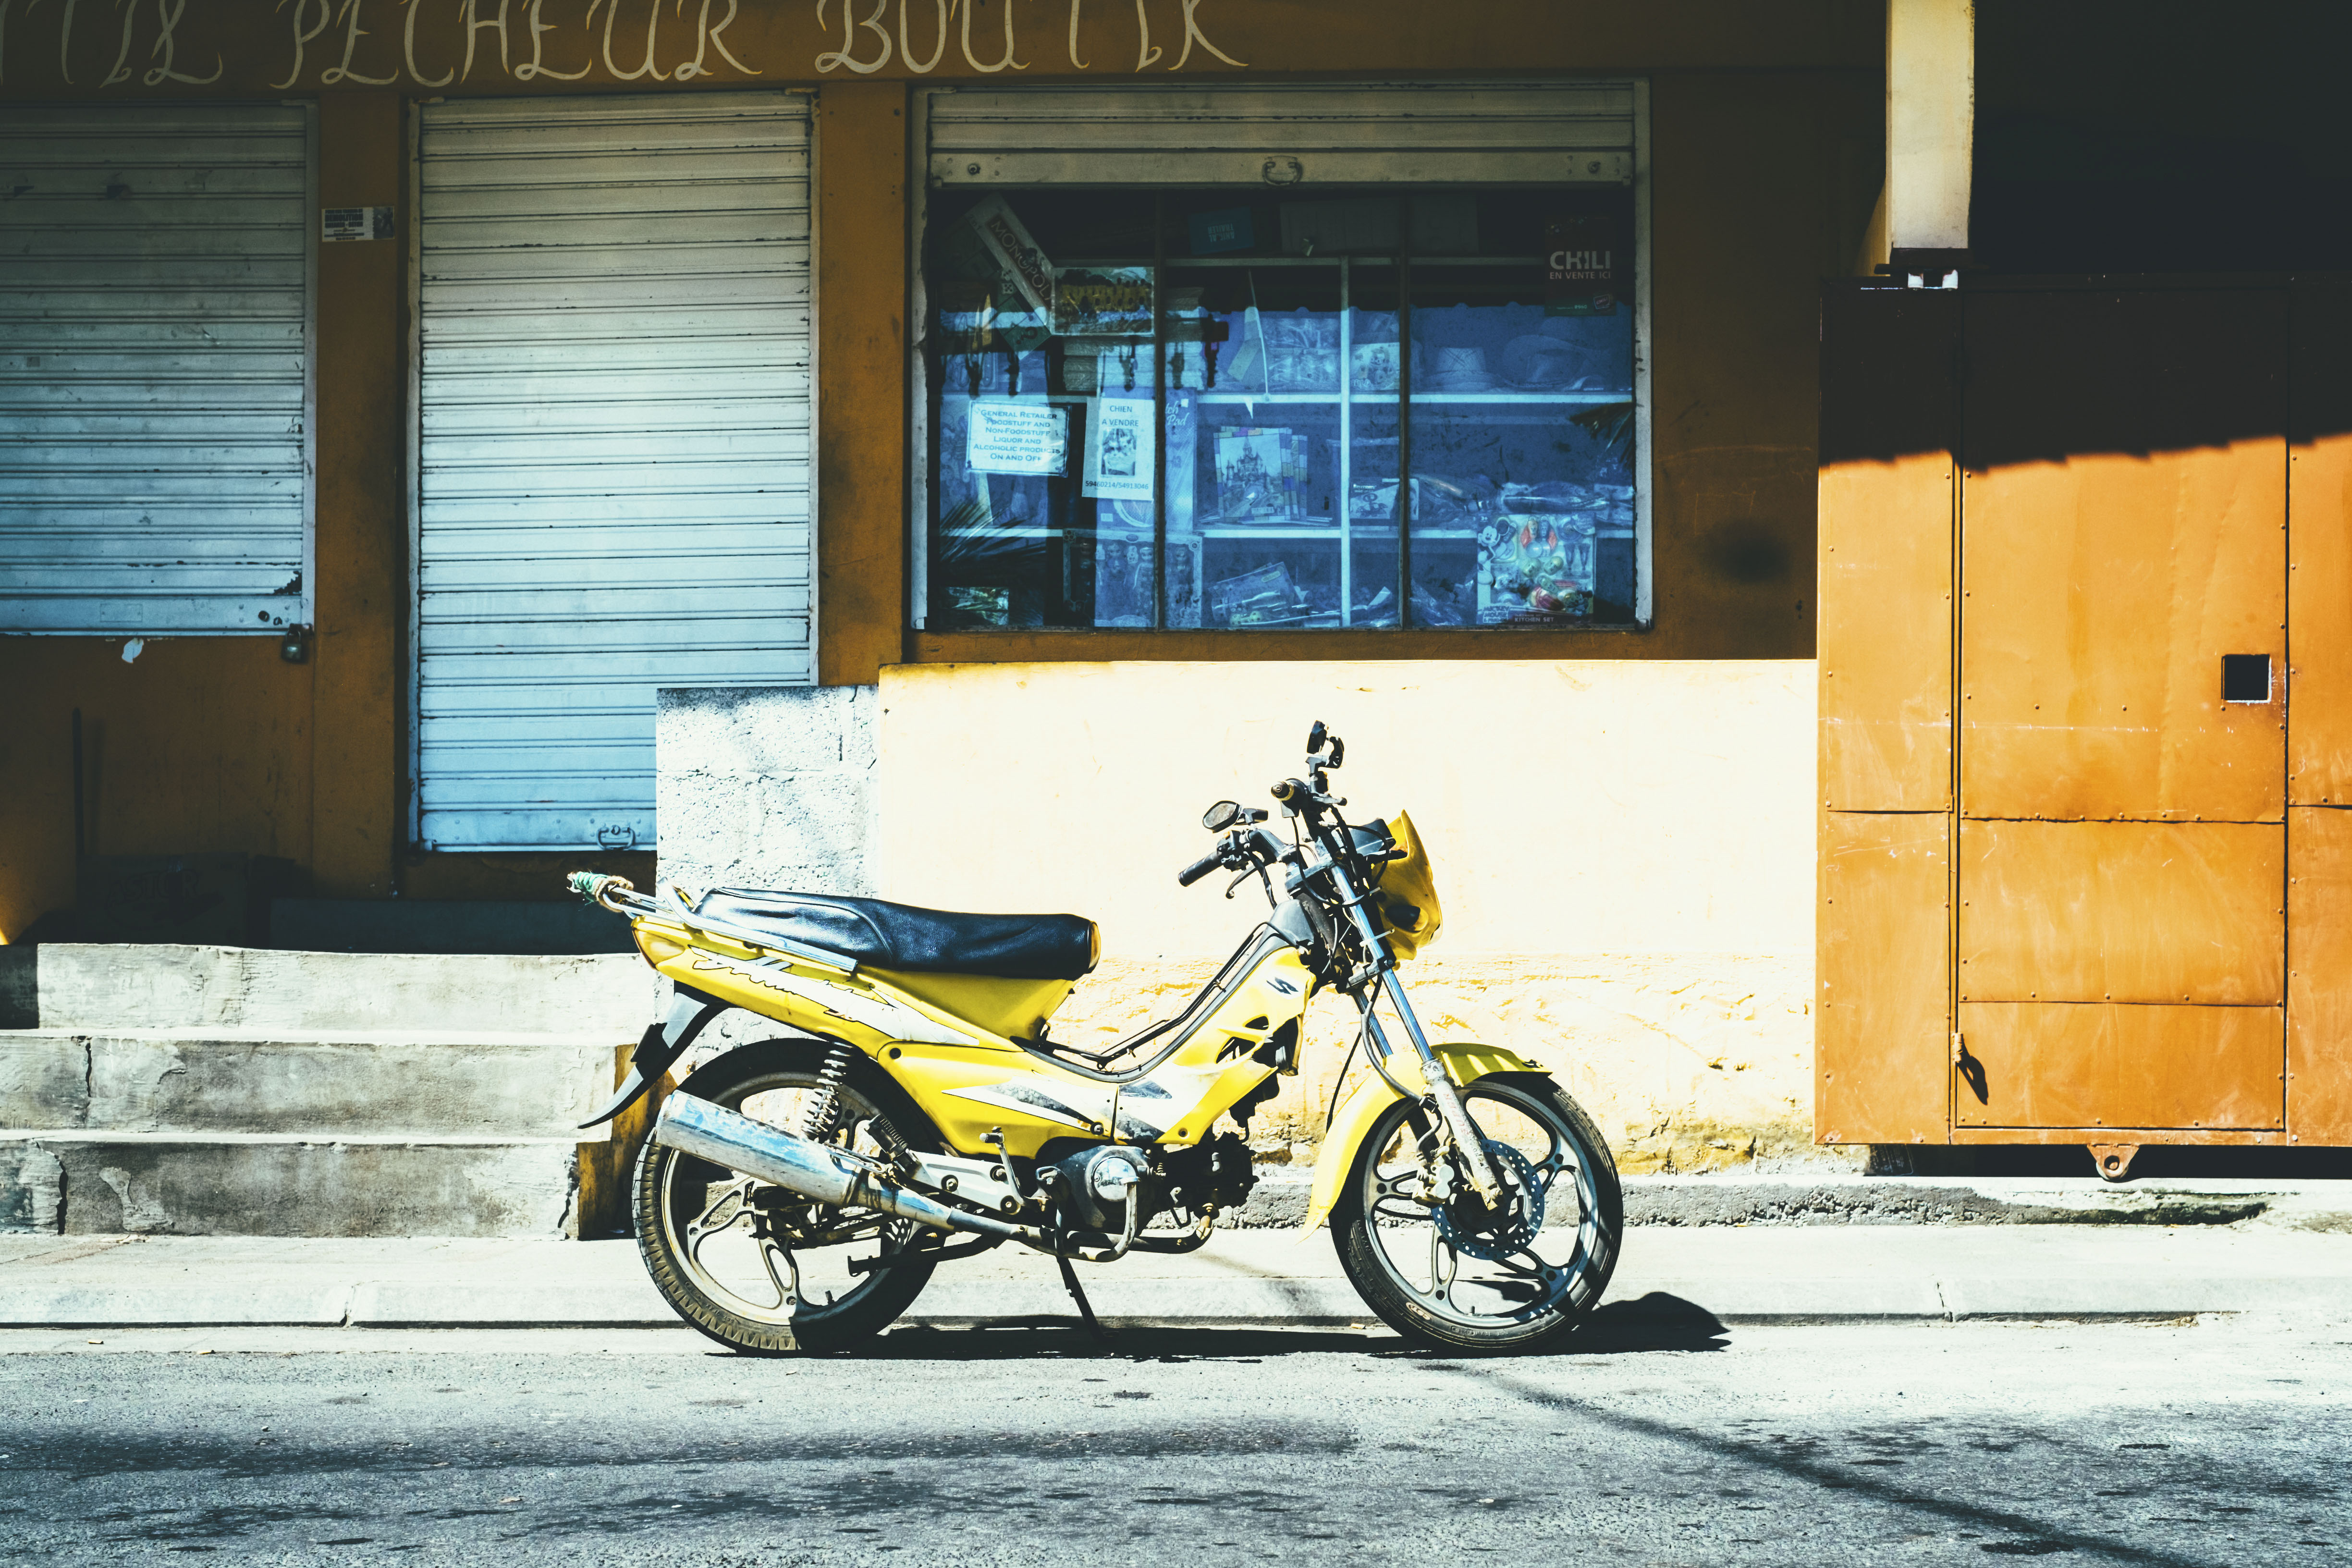 motorcycle_street_yellow_114868_4896x3264